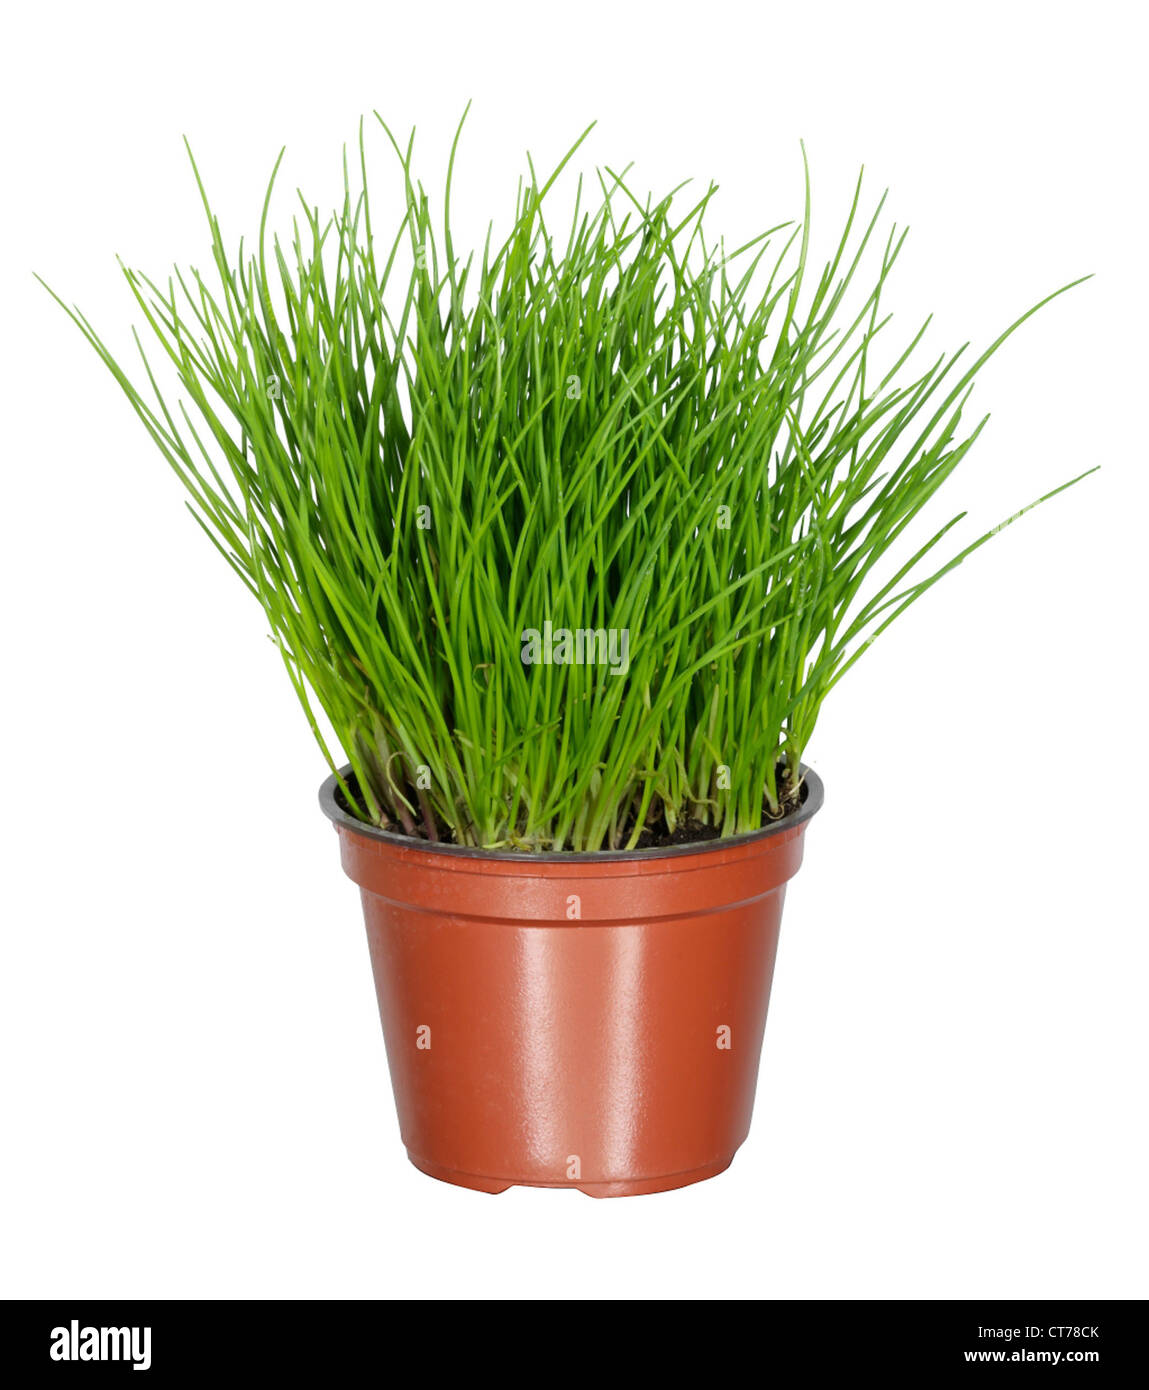 Image of: Chives In Flower Pot Stock Photo Alamy